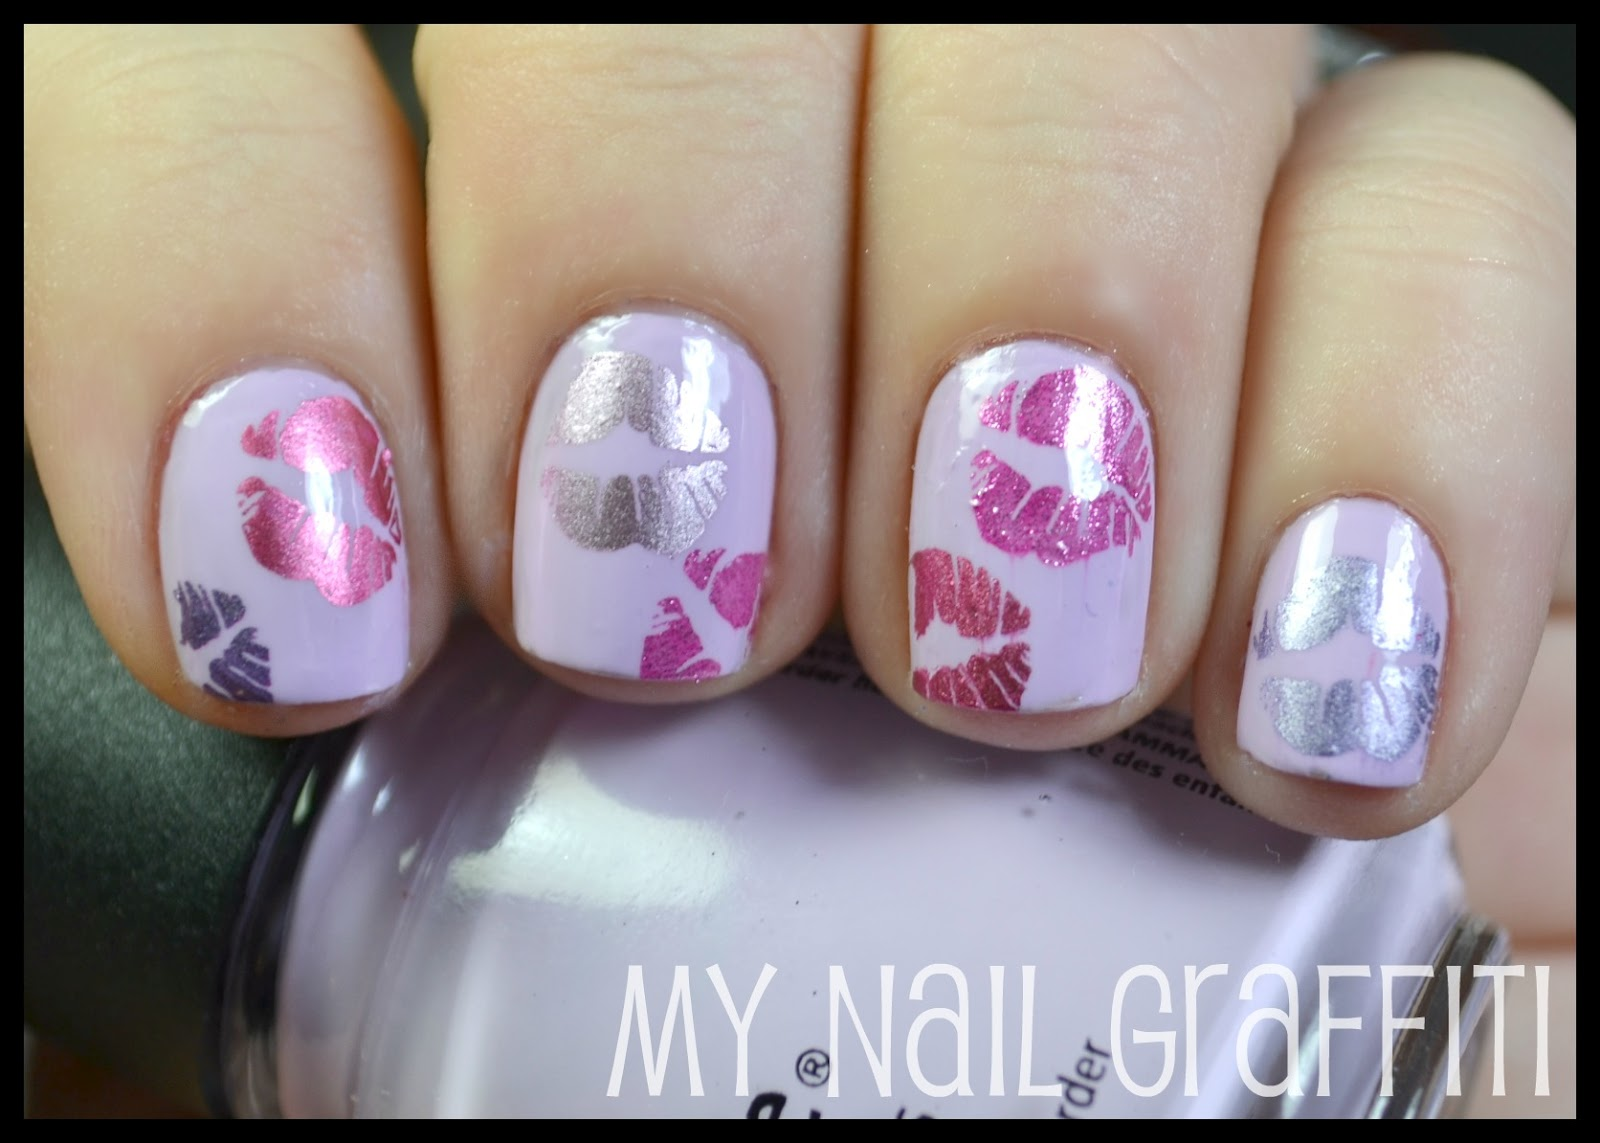 My Nail Graffiti: Valentine Kisses Nail Art